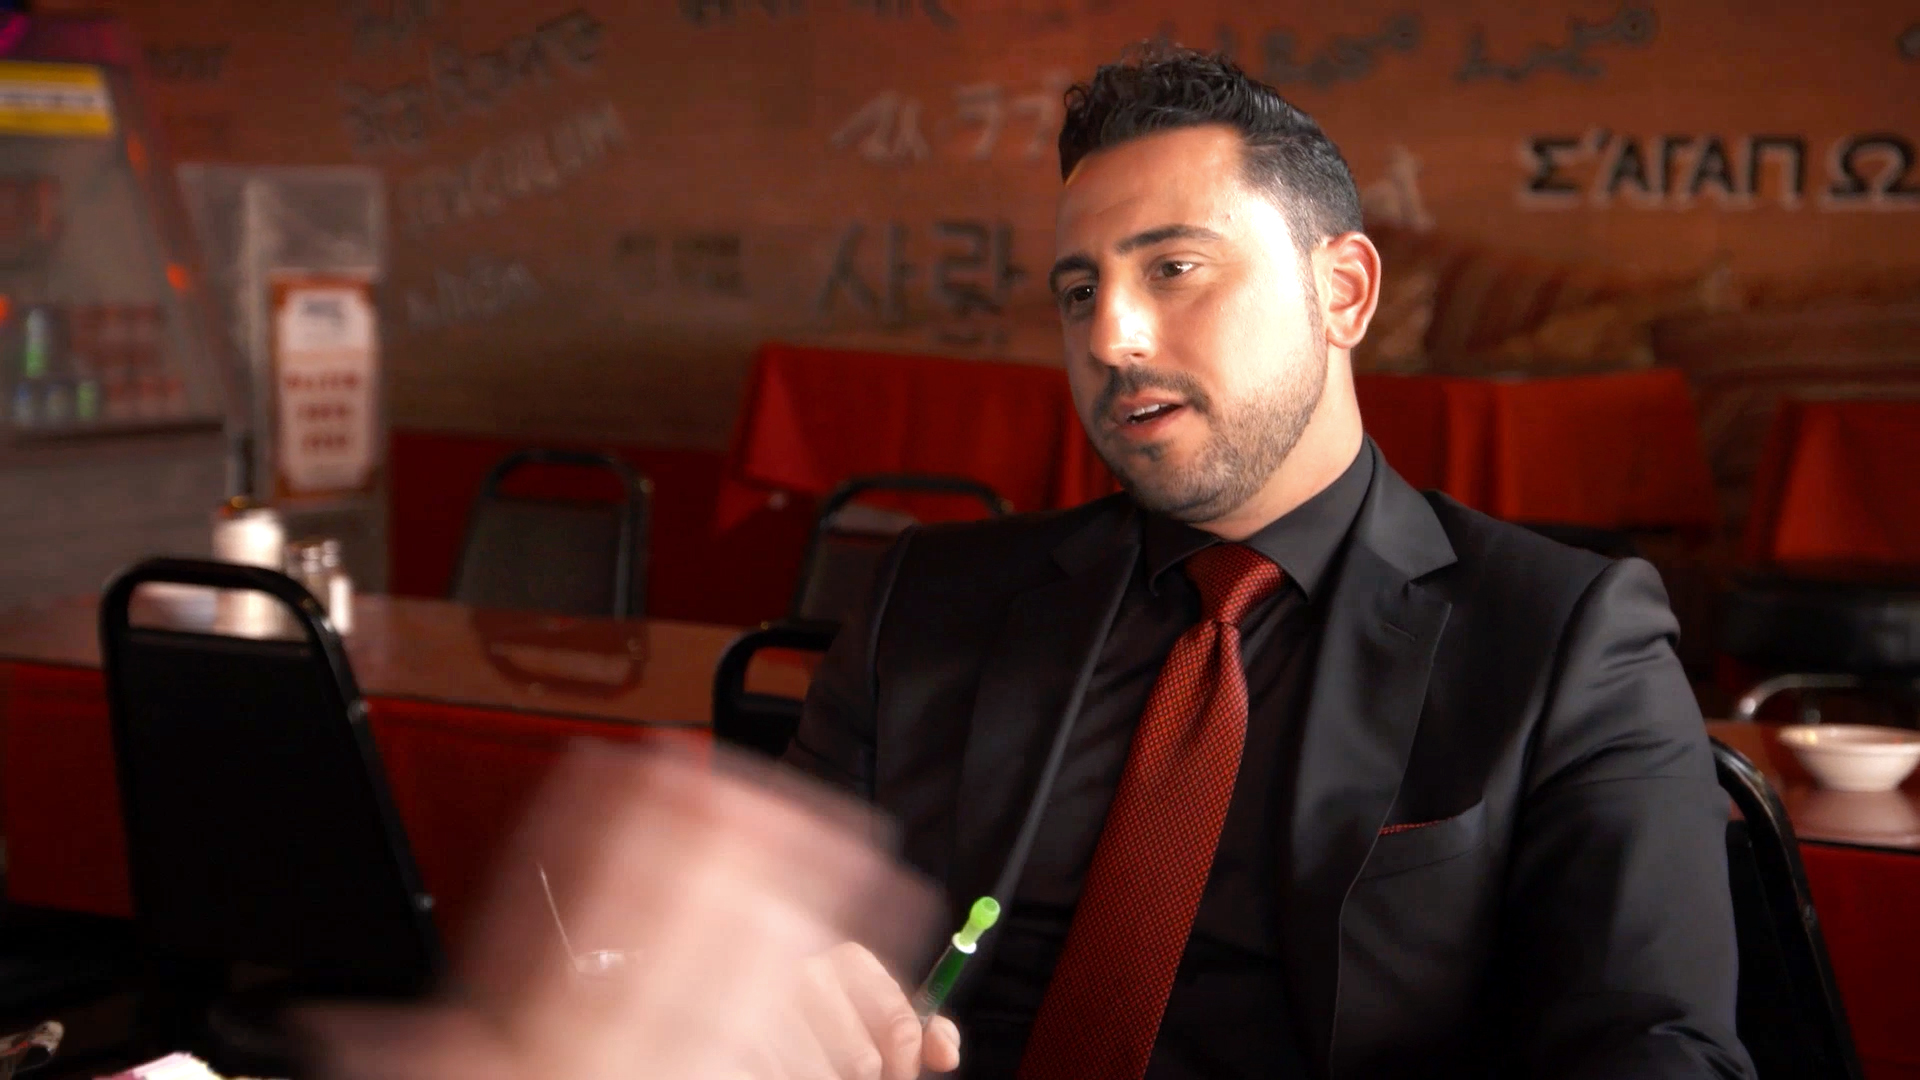 Josh Altman's Client Isn't Impressed by His Offers